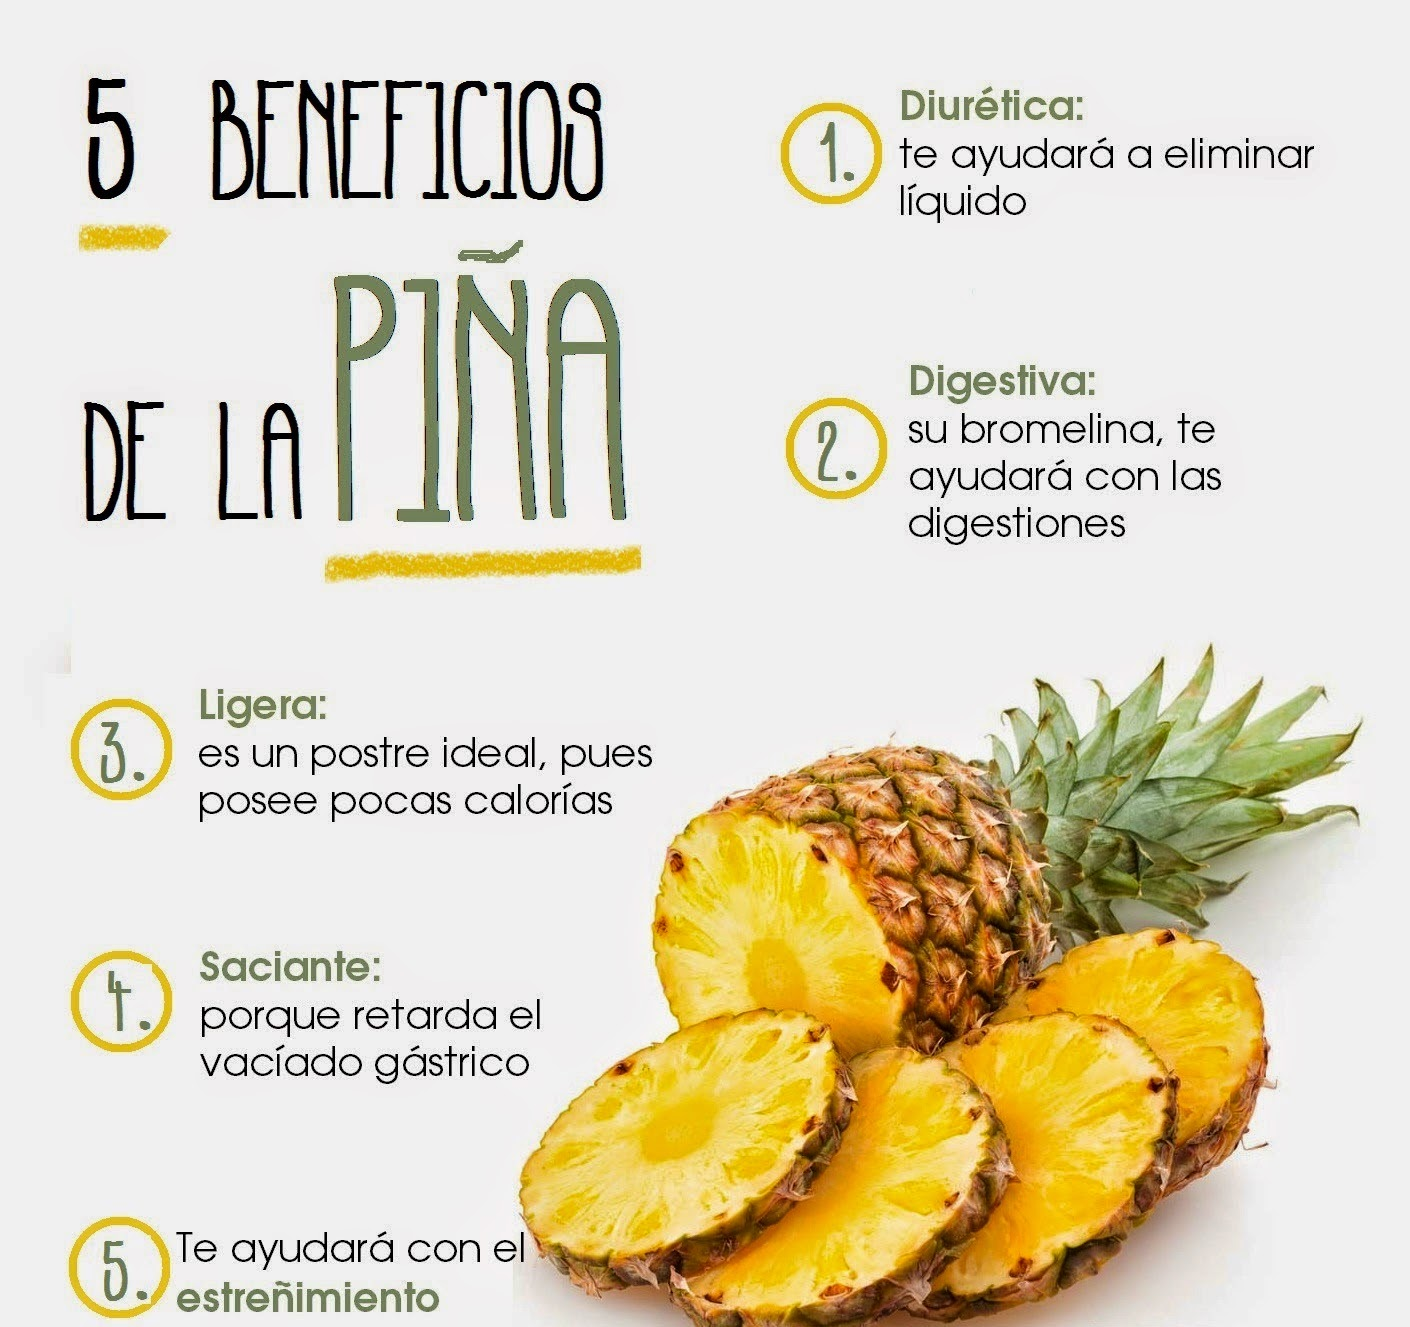 Beneficios de la piño